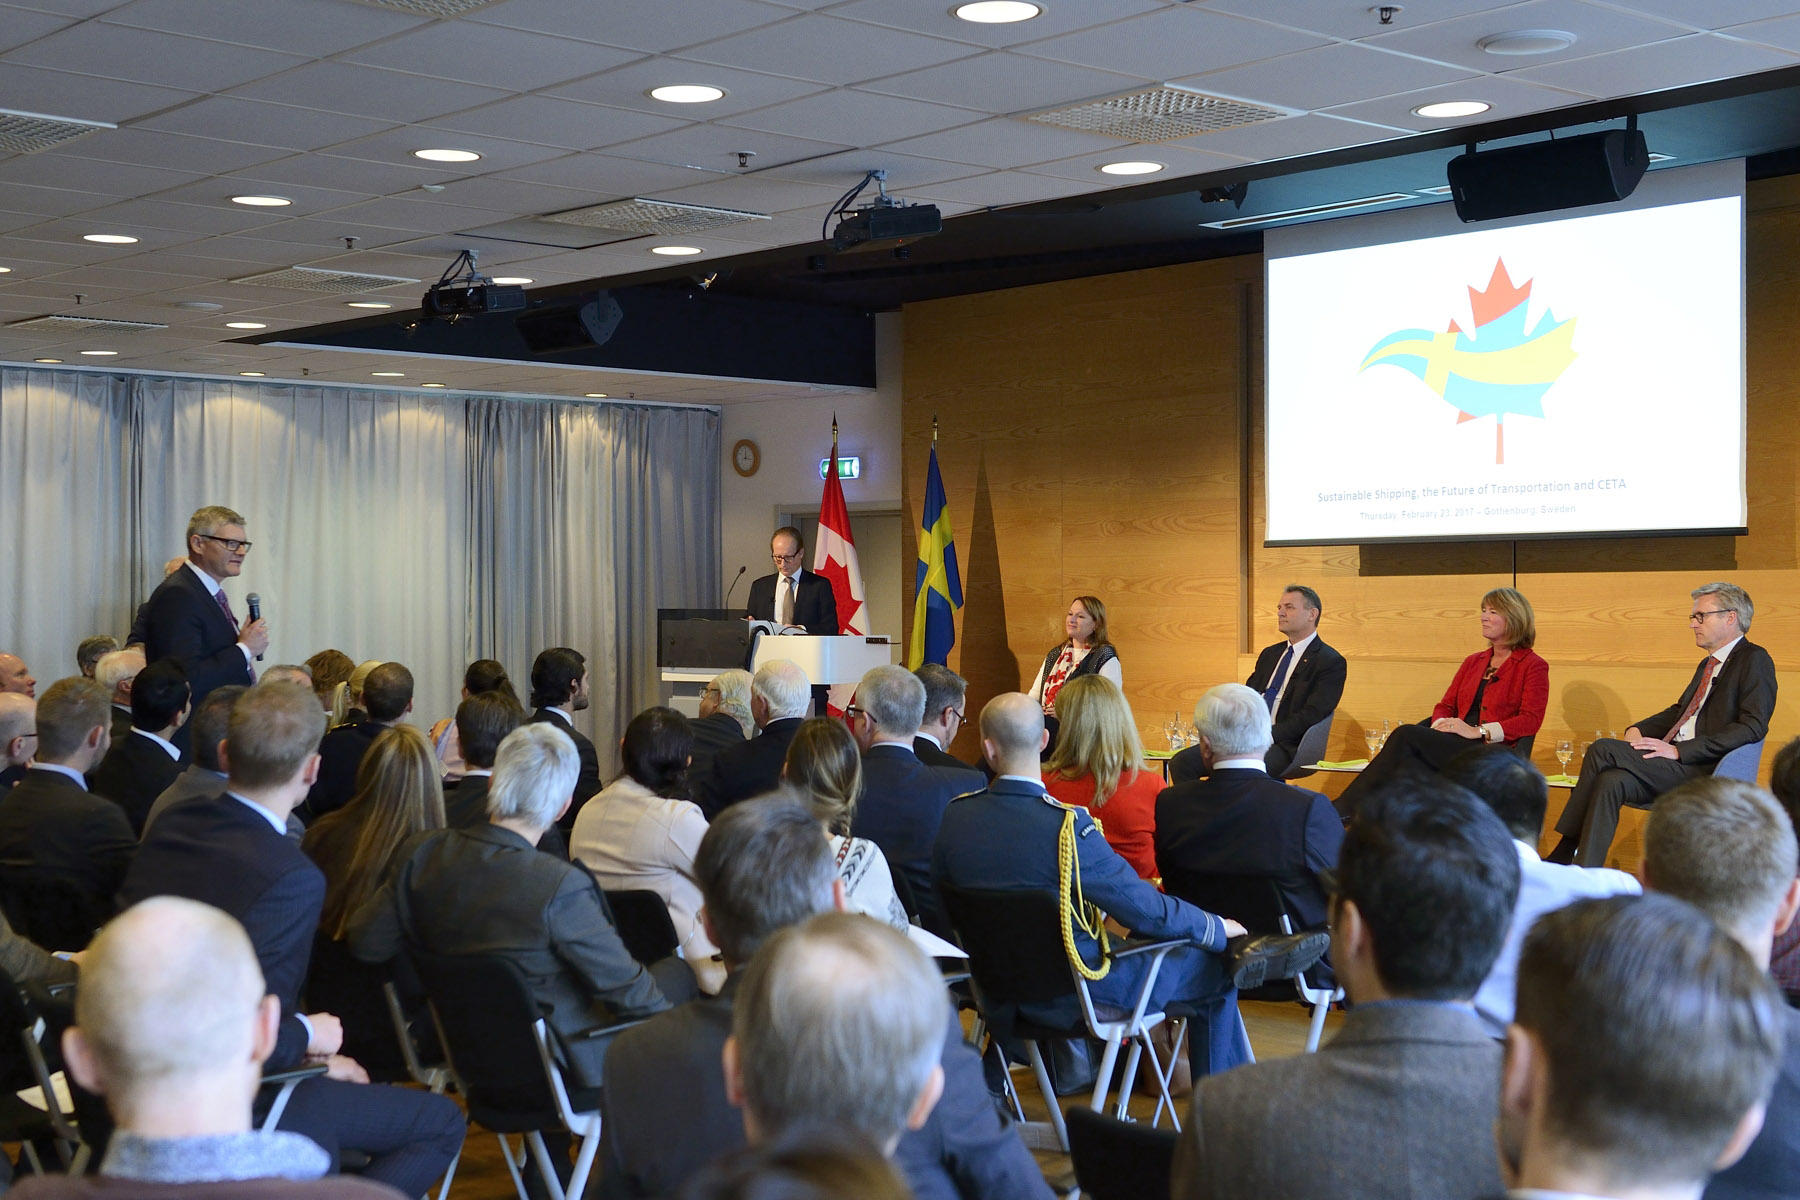 At the Lindholmen Science Park, His Excellency and Canadian delegates attended a panel discussion on sustainable shipping between Canada and Sweden with port authorities and members of the shipping industry.